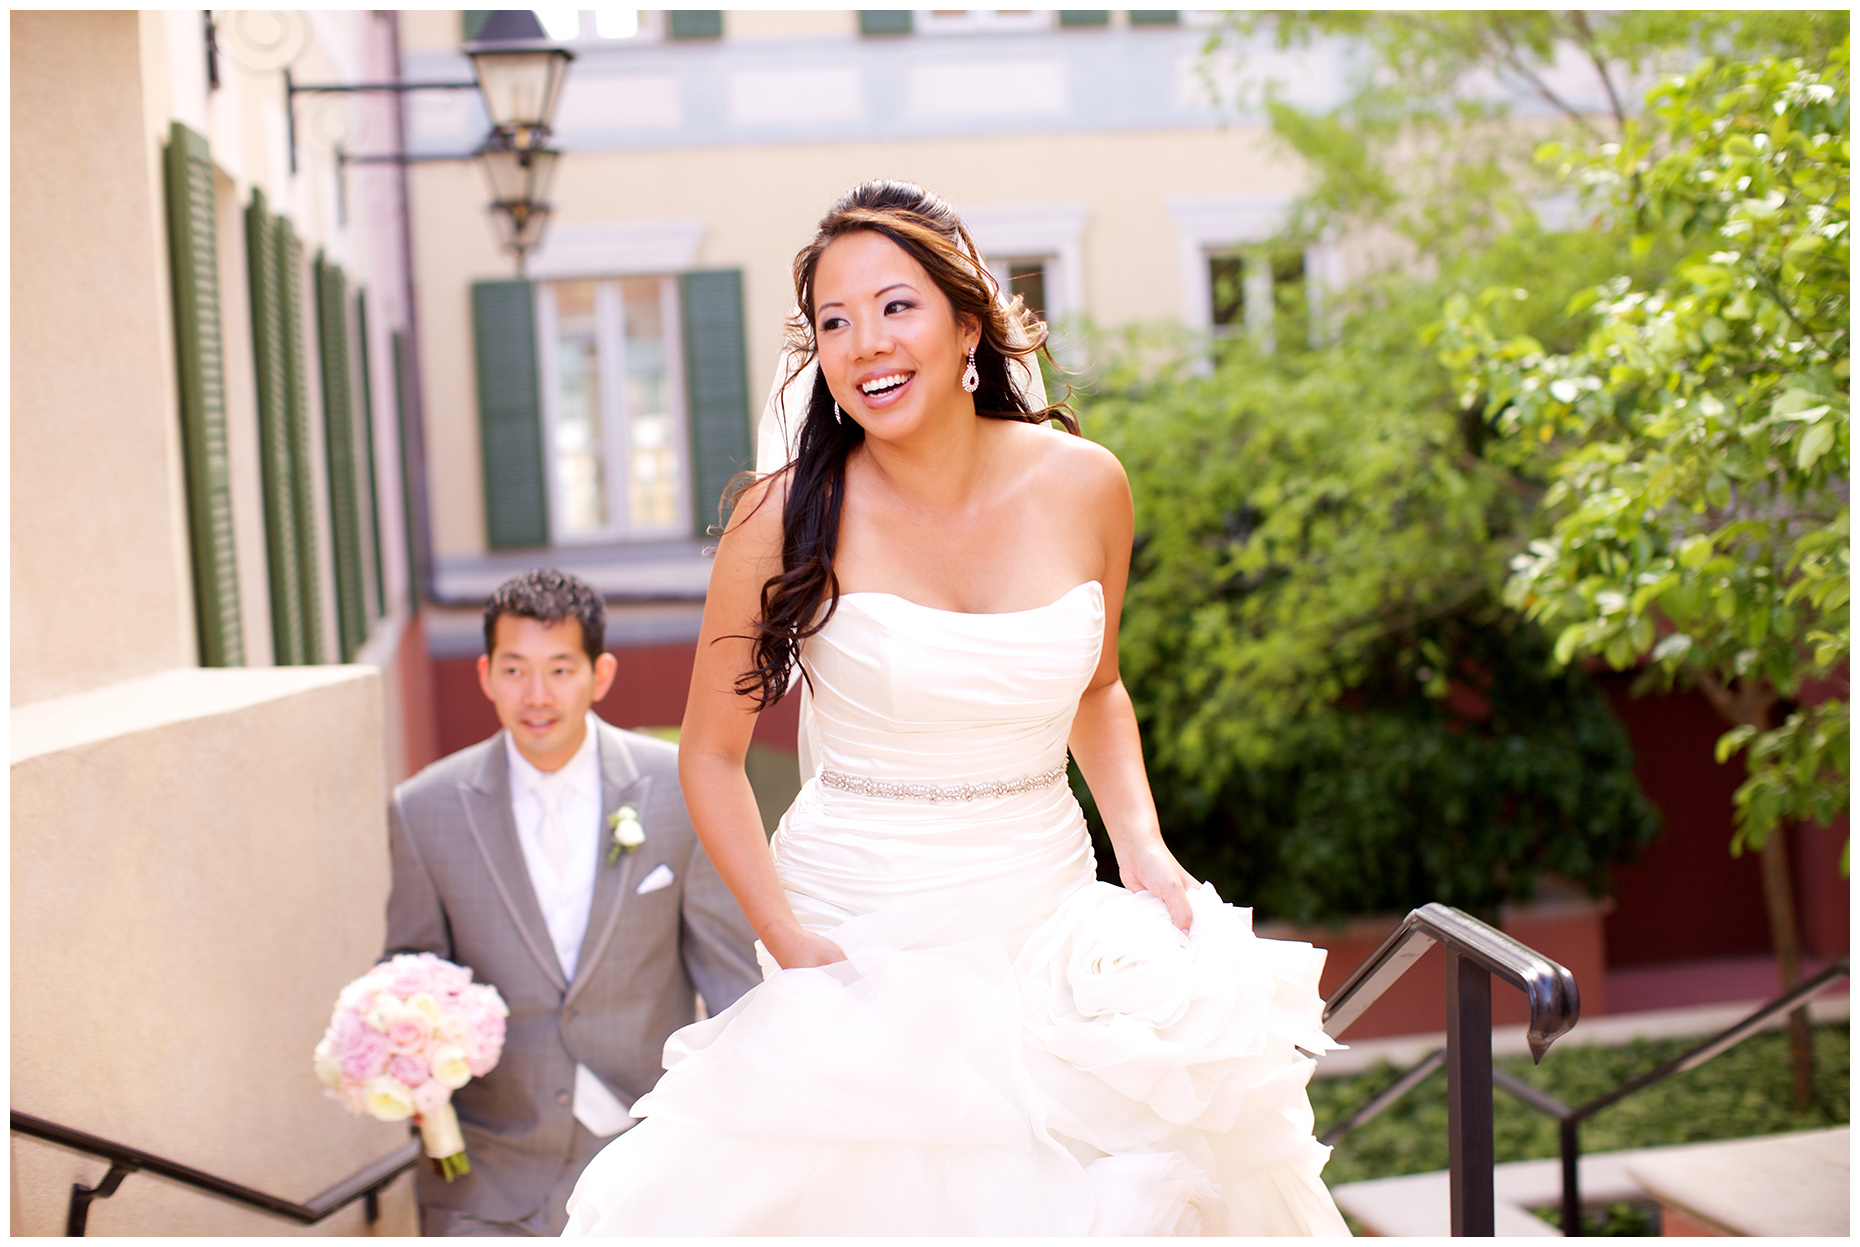 Jensen Larson Photography | Wedding at the Portofino Bay Hotel Orlando Florida